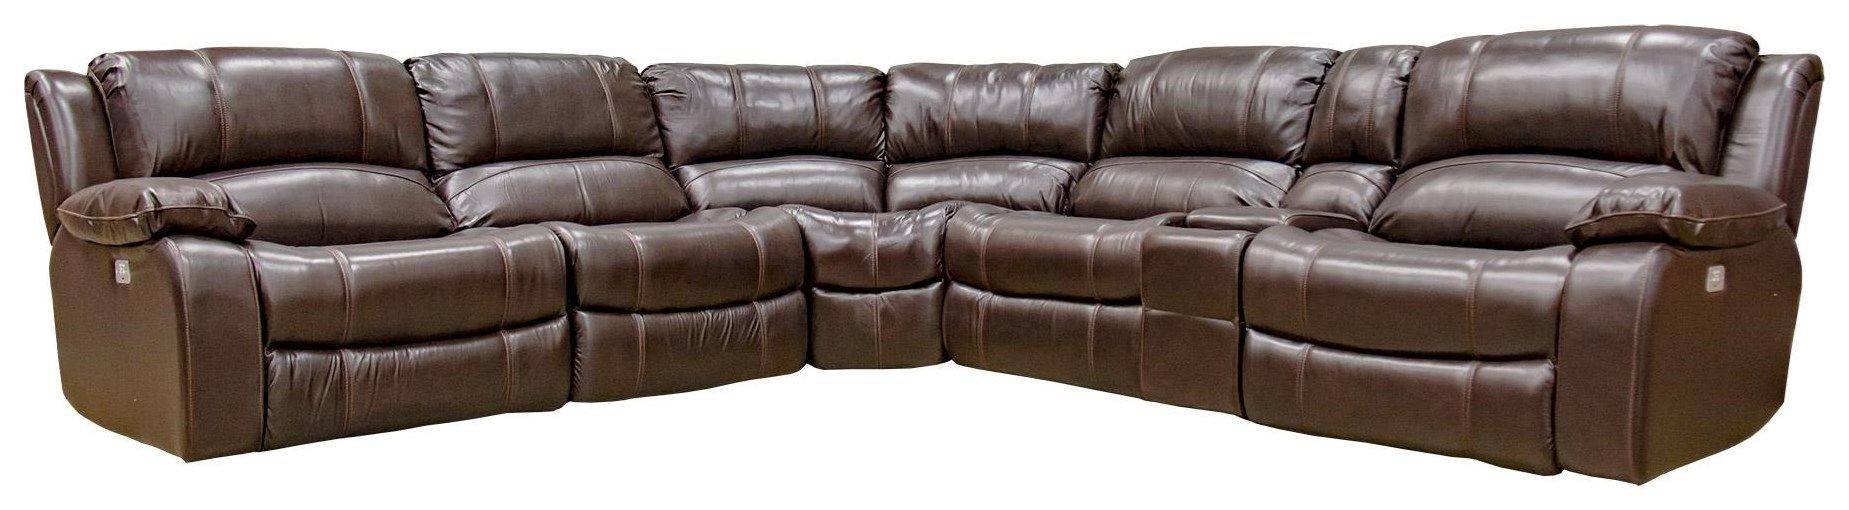 Excellent Concord Leather Six Piece Reclining Sofa With Power Headrest Ocoug Best Dining Table And Chair Ideas Images Ocougorg